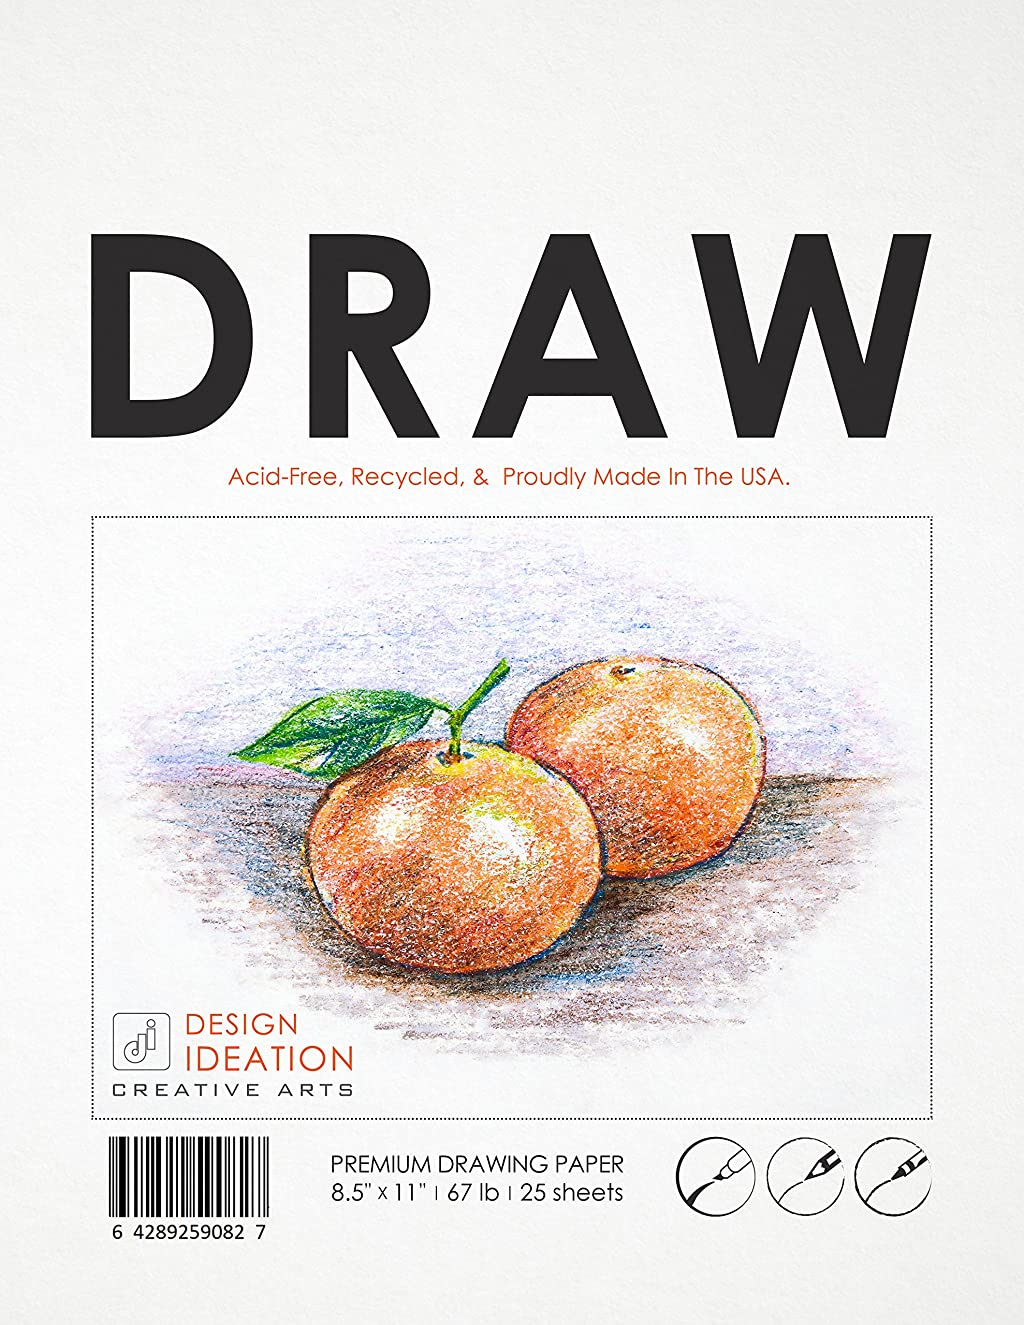 Premium Drawing Paper for Pencil, Ink, Marker and Charcoal. Great for Art, Design and Education. Loose Sheet Pack. (25 Sheet Pack)